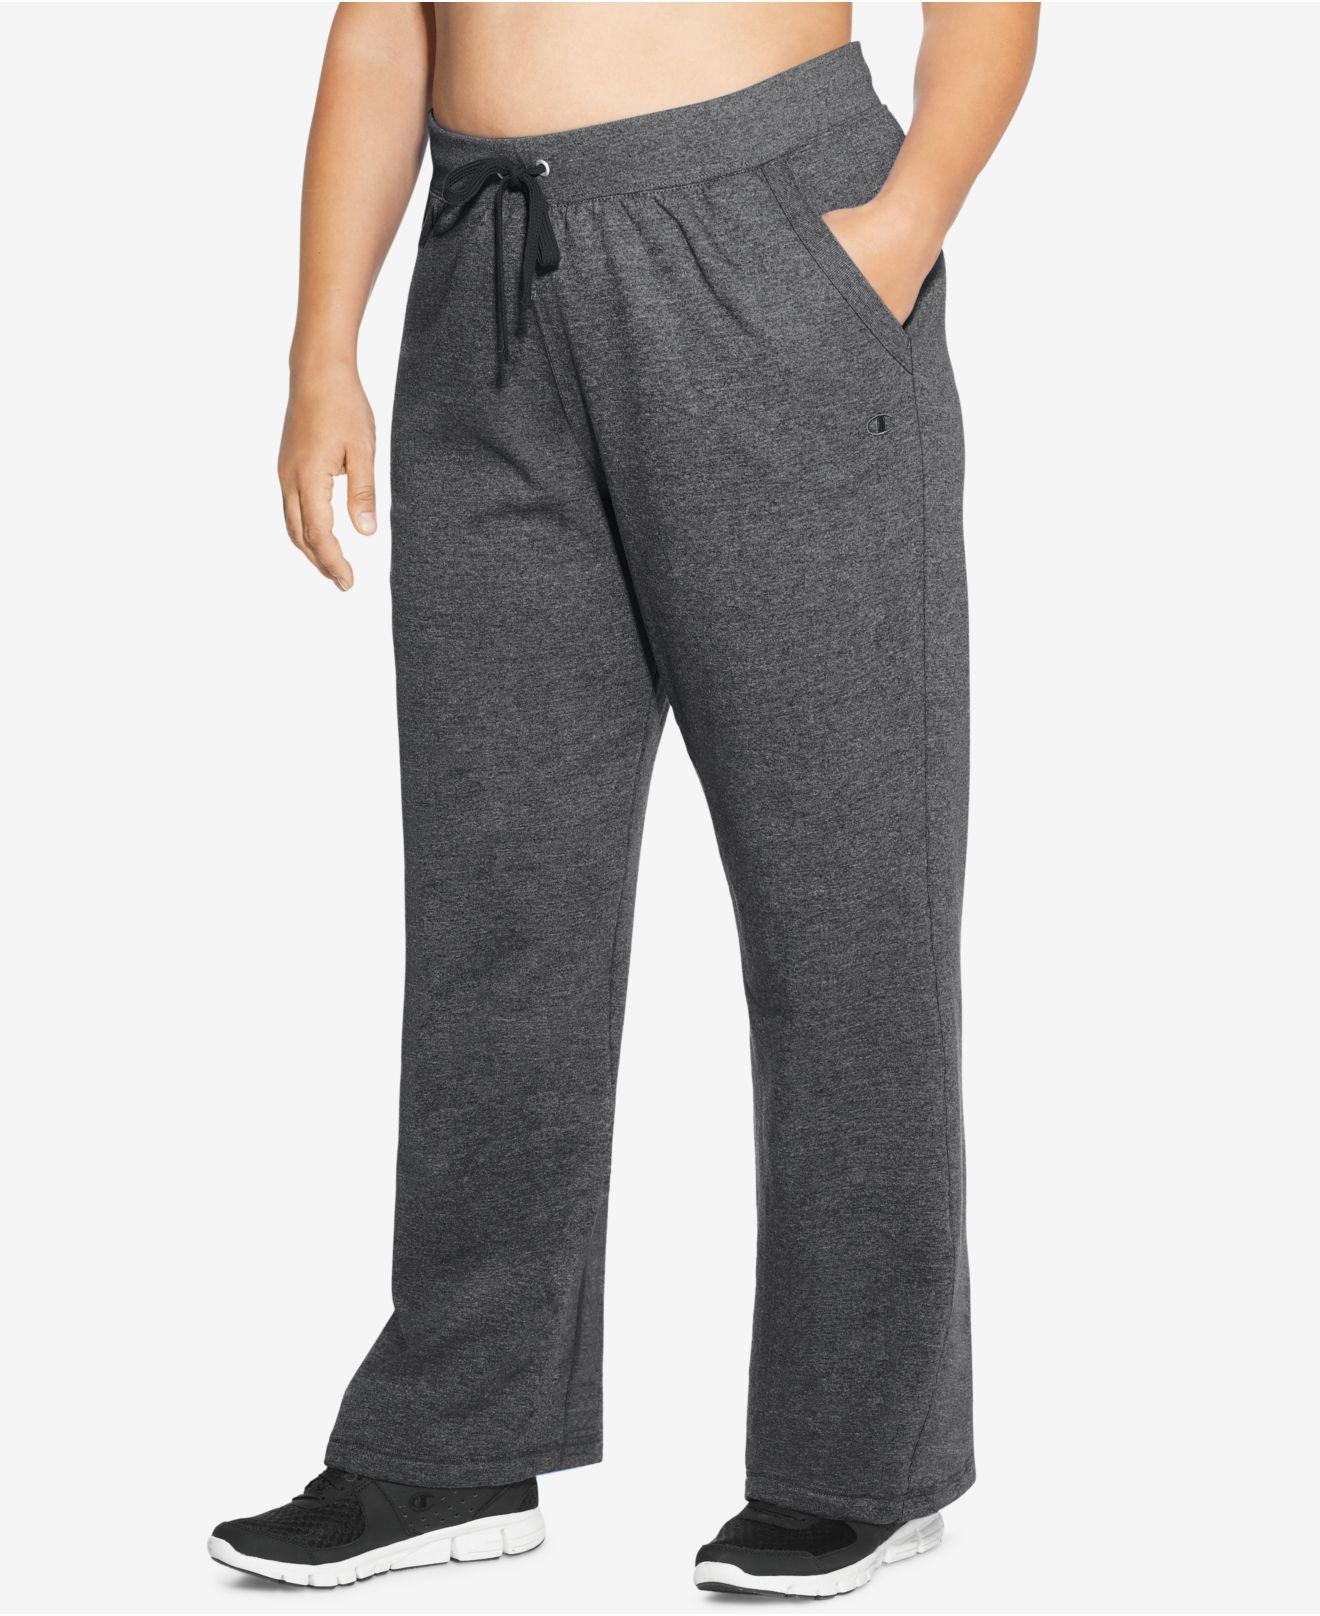 79d963b296e92 Champion Plus Size Jersey Pants in Gray - Lyst